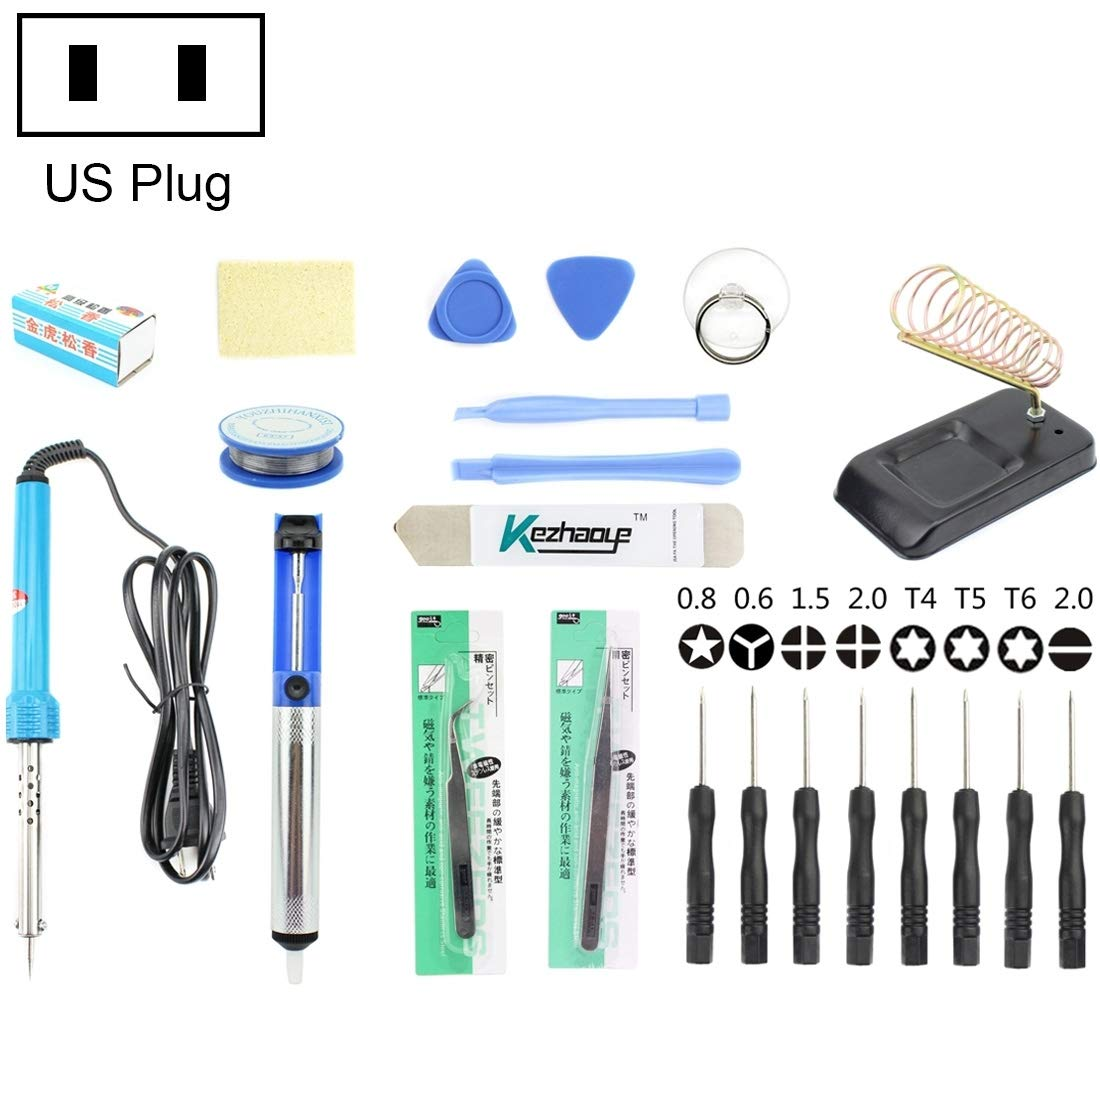 Toos Accessory JF-8120 22 in 1 Soldering Iron Tool Set Hand Tools (SKU : 22 in 1)